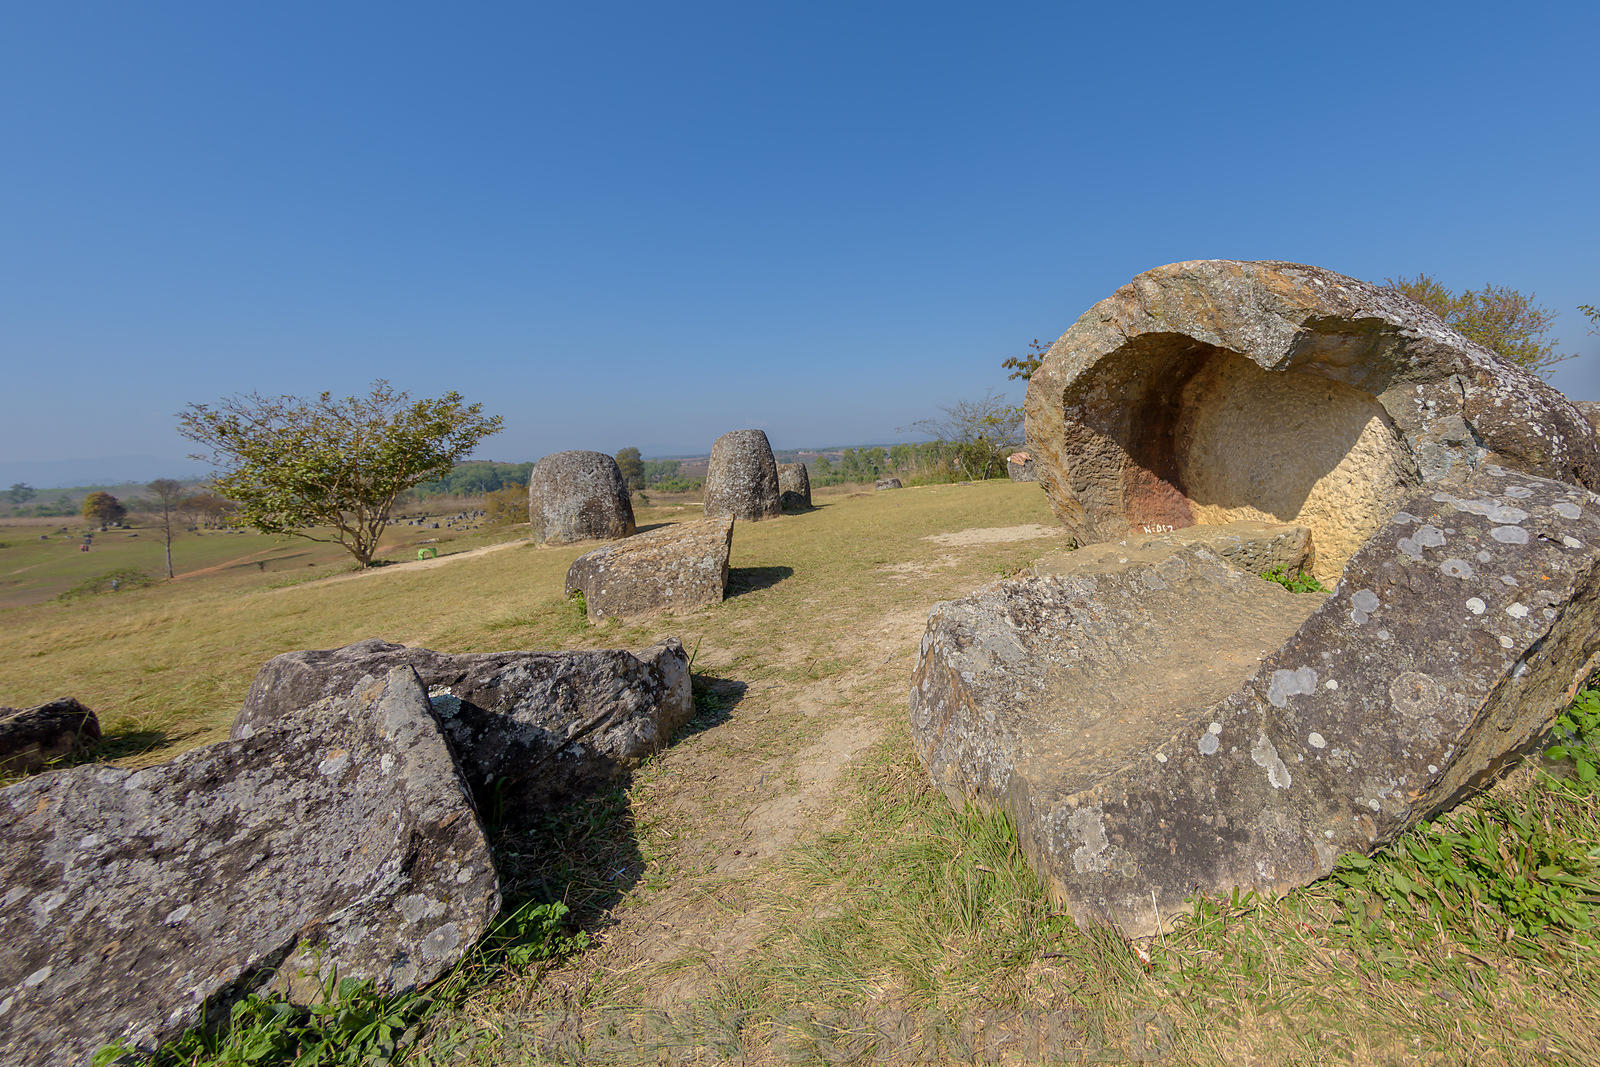 Plain of Jars, Thong Hai Hin Site 1, at Thomghaihin near the town of Phonsavan in the province Xieng Khuang in Laos in Southe...